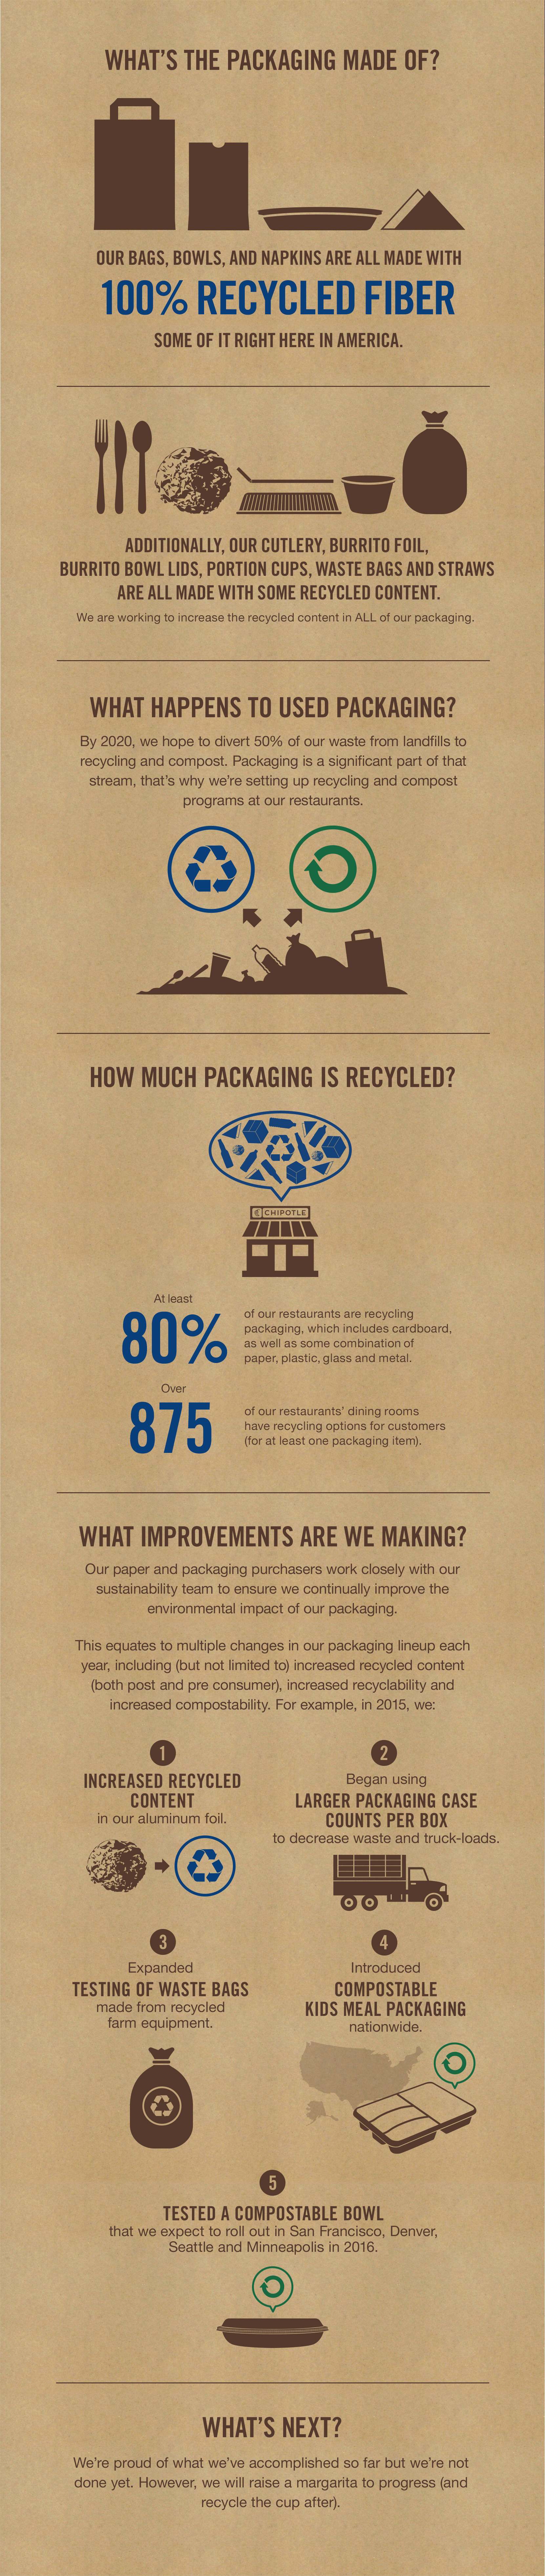 What's the packaging made of?  Our bags, bowls and napkins are all made with 100% recycled fiber, some of it right here in America.  Additionally, our cutlery, burrito foil, burrito bowl lids, portion cups, waste bags and straws are all made with some recycled content. We are working to increase the recycled content in ALL of our packaging.  What happens to used packaging?  By 2020, we hope to divert 50% of our waste from landfills to recycling and compost. Packaging is a significant part of that stream, that's why we're setting up recycling and compost programs at our restaurants.  How much packaging is recycled?  -At least 80% of our restaurants are recycling packaging, which includes cardboard, as well as some combination of paper, plastic, glass and metal. -Over 875 of our restaurants' dining rooms have recycling options for customers (for at least one packaging item).  What improvements are we making?  Our paper and packaging purchasers work closely with our sustainability team to ensure we continually improve the environmental impact of our packaging.  This equates to multiple changes in our packaging lineup each year, including (but not limted to) increased recycled content (both post and pre consumer), increased recyclability and increased compostability. For example, in 2015, we:  1Increased recycled content in our aluminum foil. 2Began using larger packaging case counts per box to decrease waste and truck loads. 3Expanded testing of waste bags made from recycled farm equipment 4Introduced compostable kids meal packaging nationwide. 5Tested a compostable bowl that we expect to roll out in San Francisco, Denver, Seattle and Minneapolis in 2016.  What's next? We're proud of what we've accomplished so far but we're not done yet. However, we will raise a margarita to progress (and recycle the cup after).